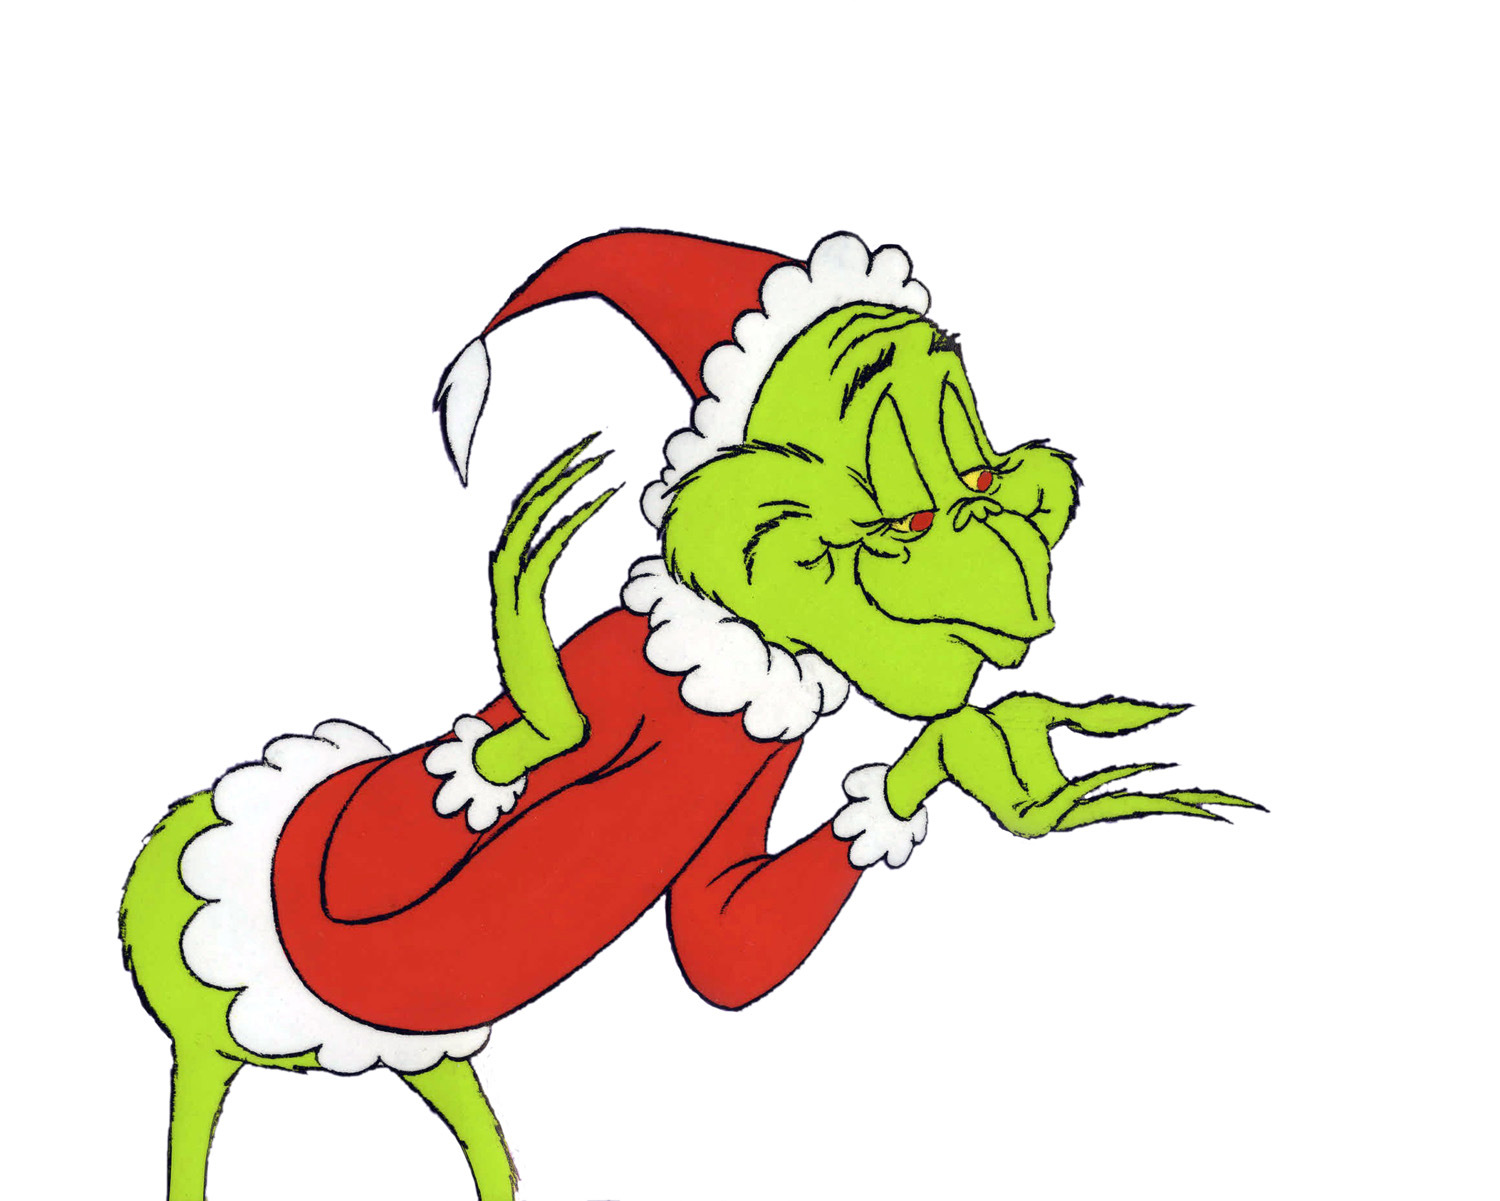 Pix For u0026gt; The Grinch Who Stole .